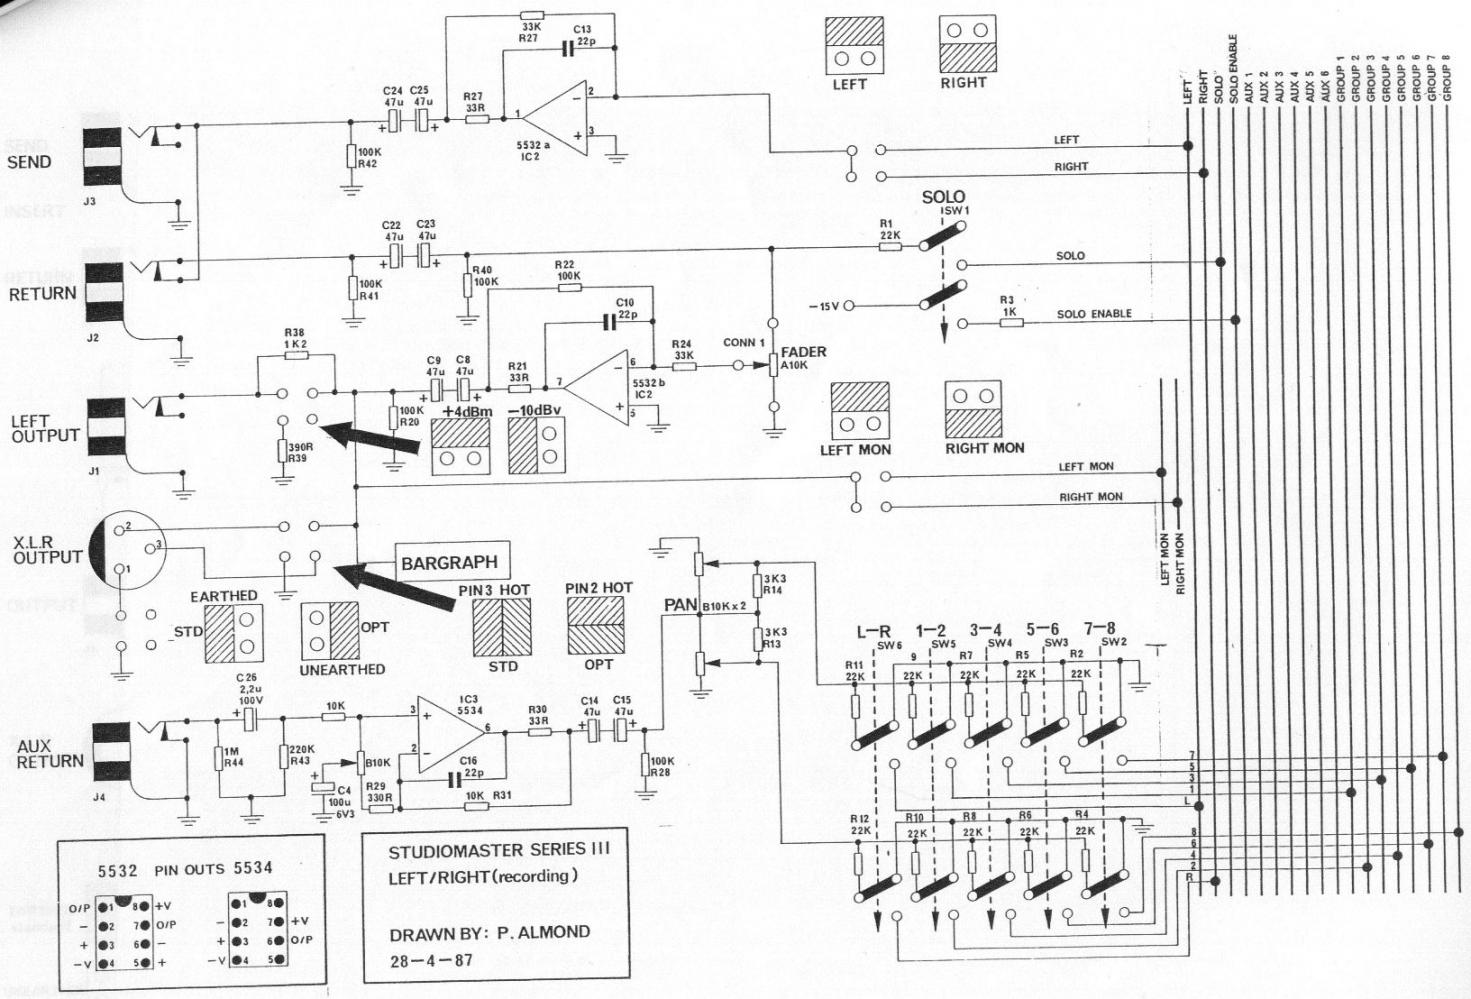 hight resolution of 80 s studiomaster console gearslutz mixing desk schematics